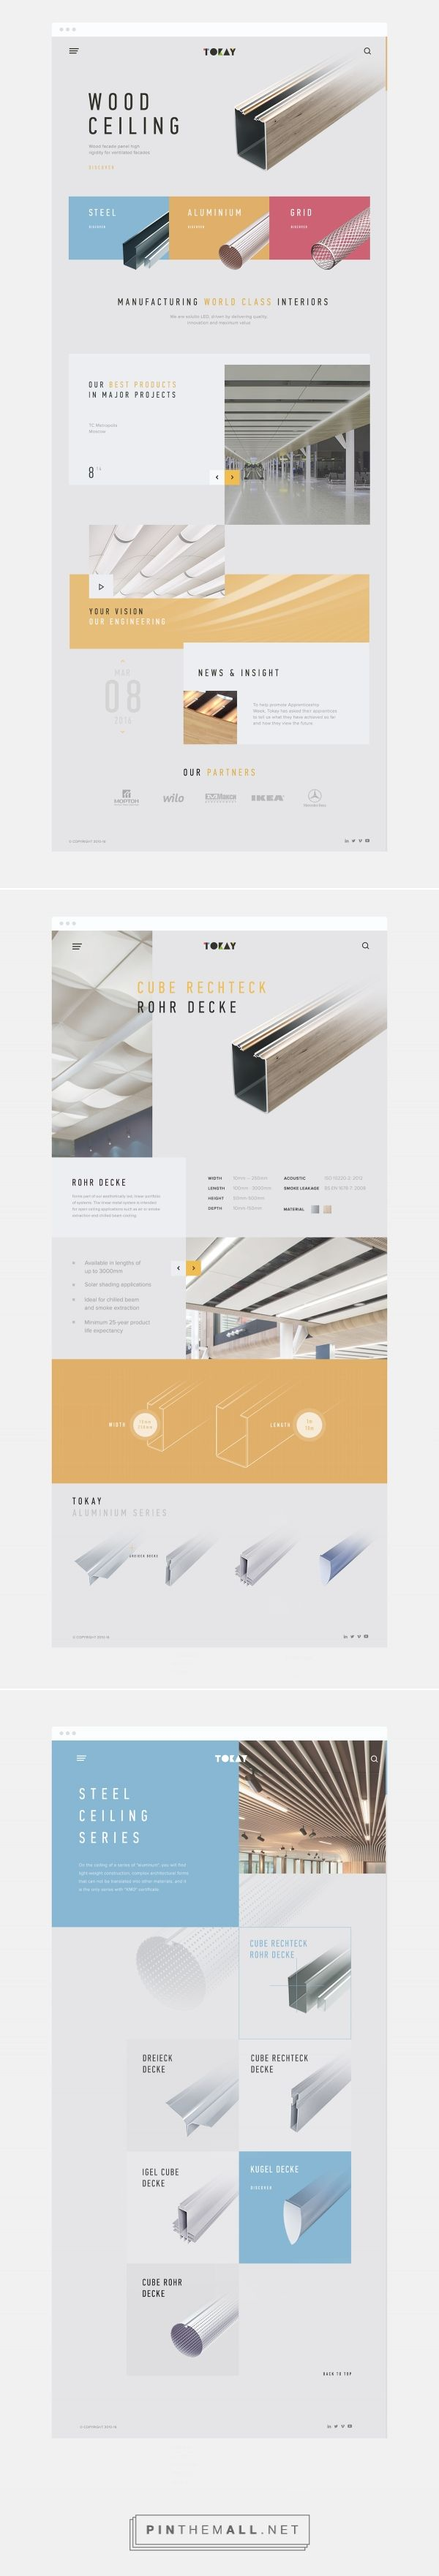 Tokay on Behance... - a grouped images picture - Pin Them All